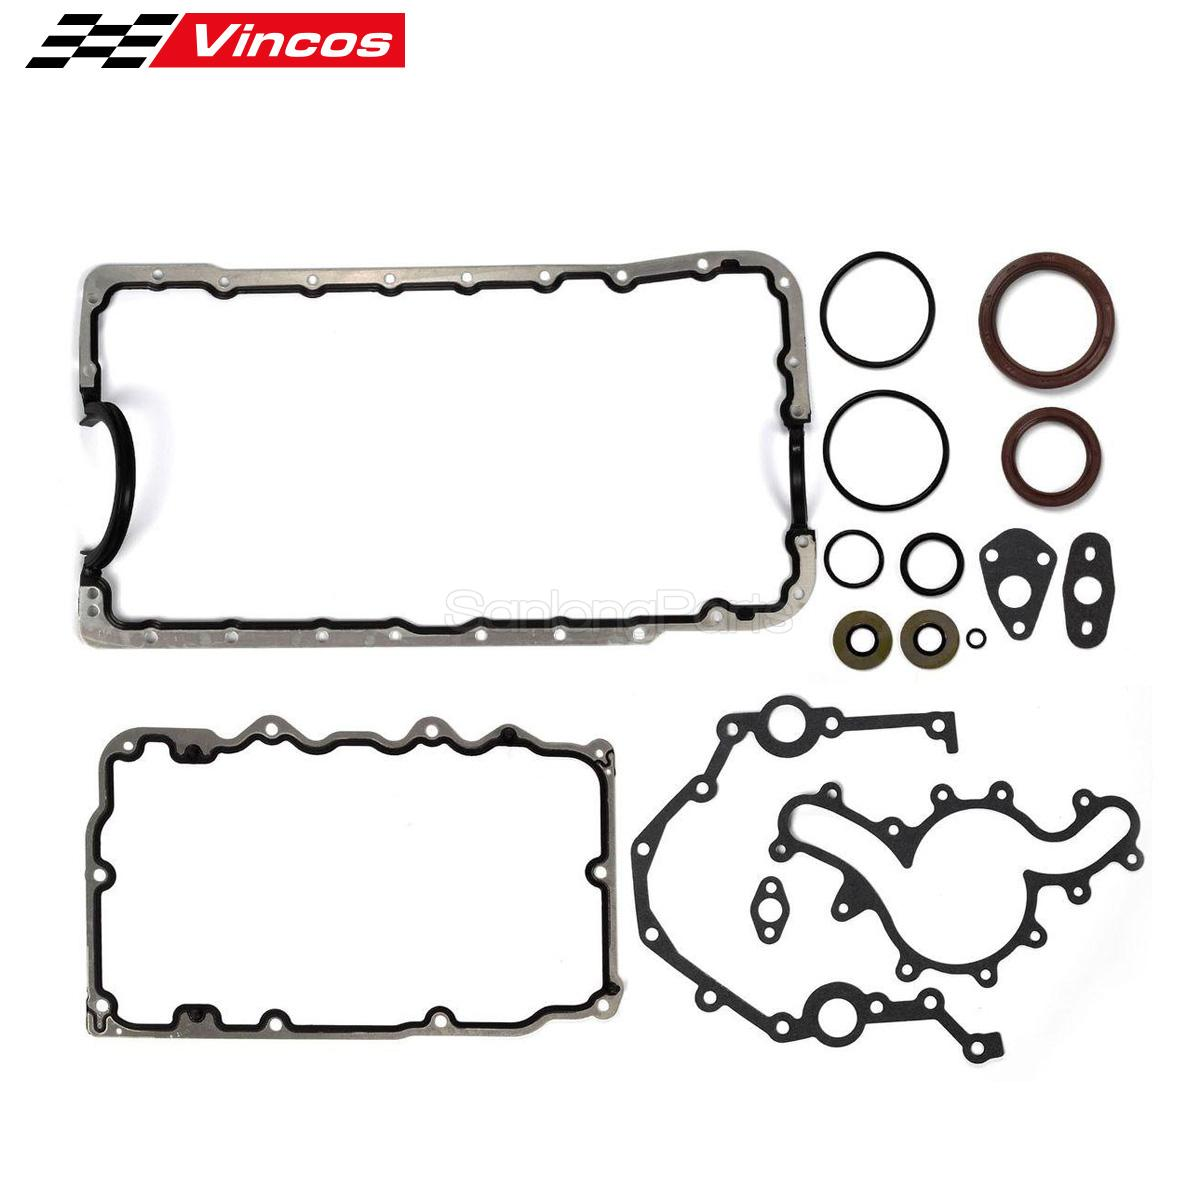 Fits for Ford 4.0L SOHC 97-11 Lower Gasket Set w/ Oil Pan